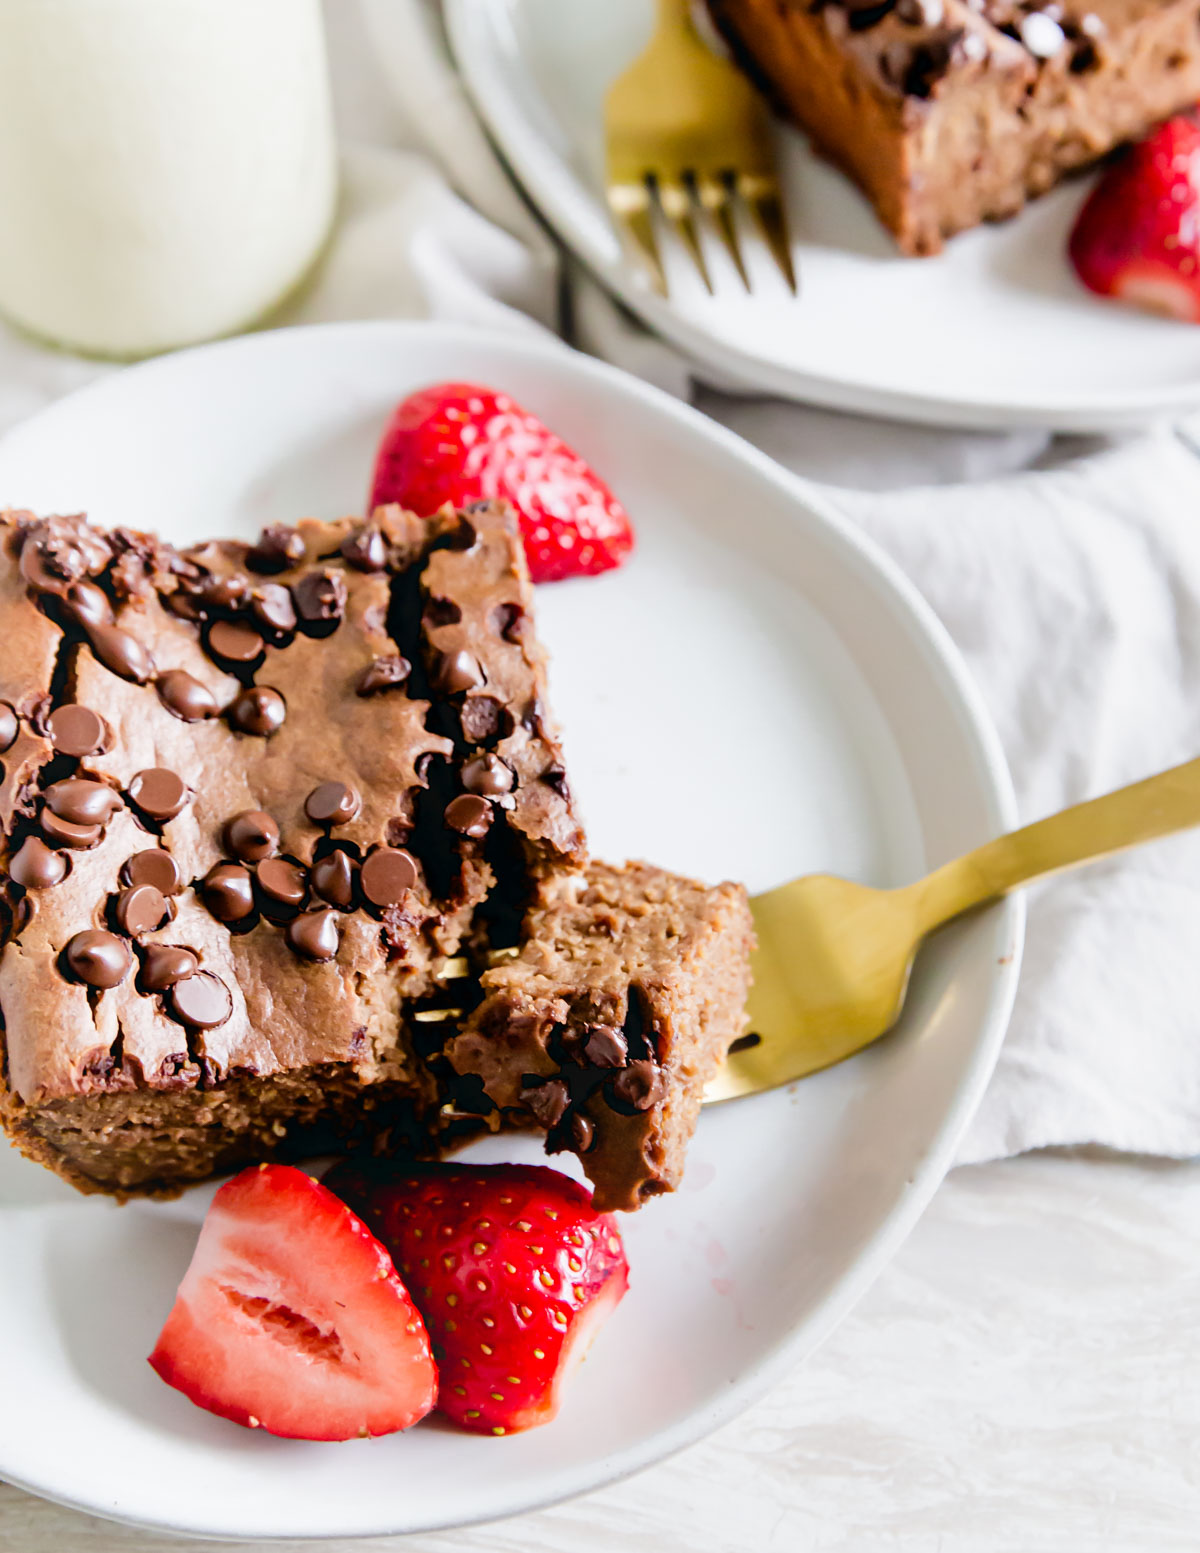 A slice of chocolate baked oats on a plate with a piece on the fork. Fresh strawberries in the background.